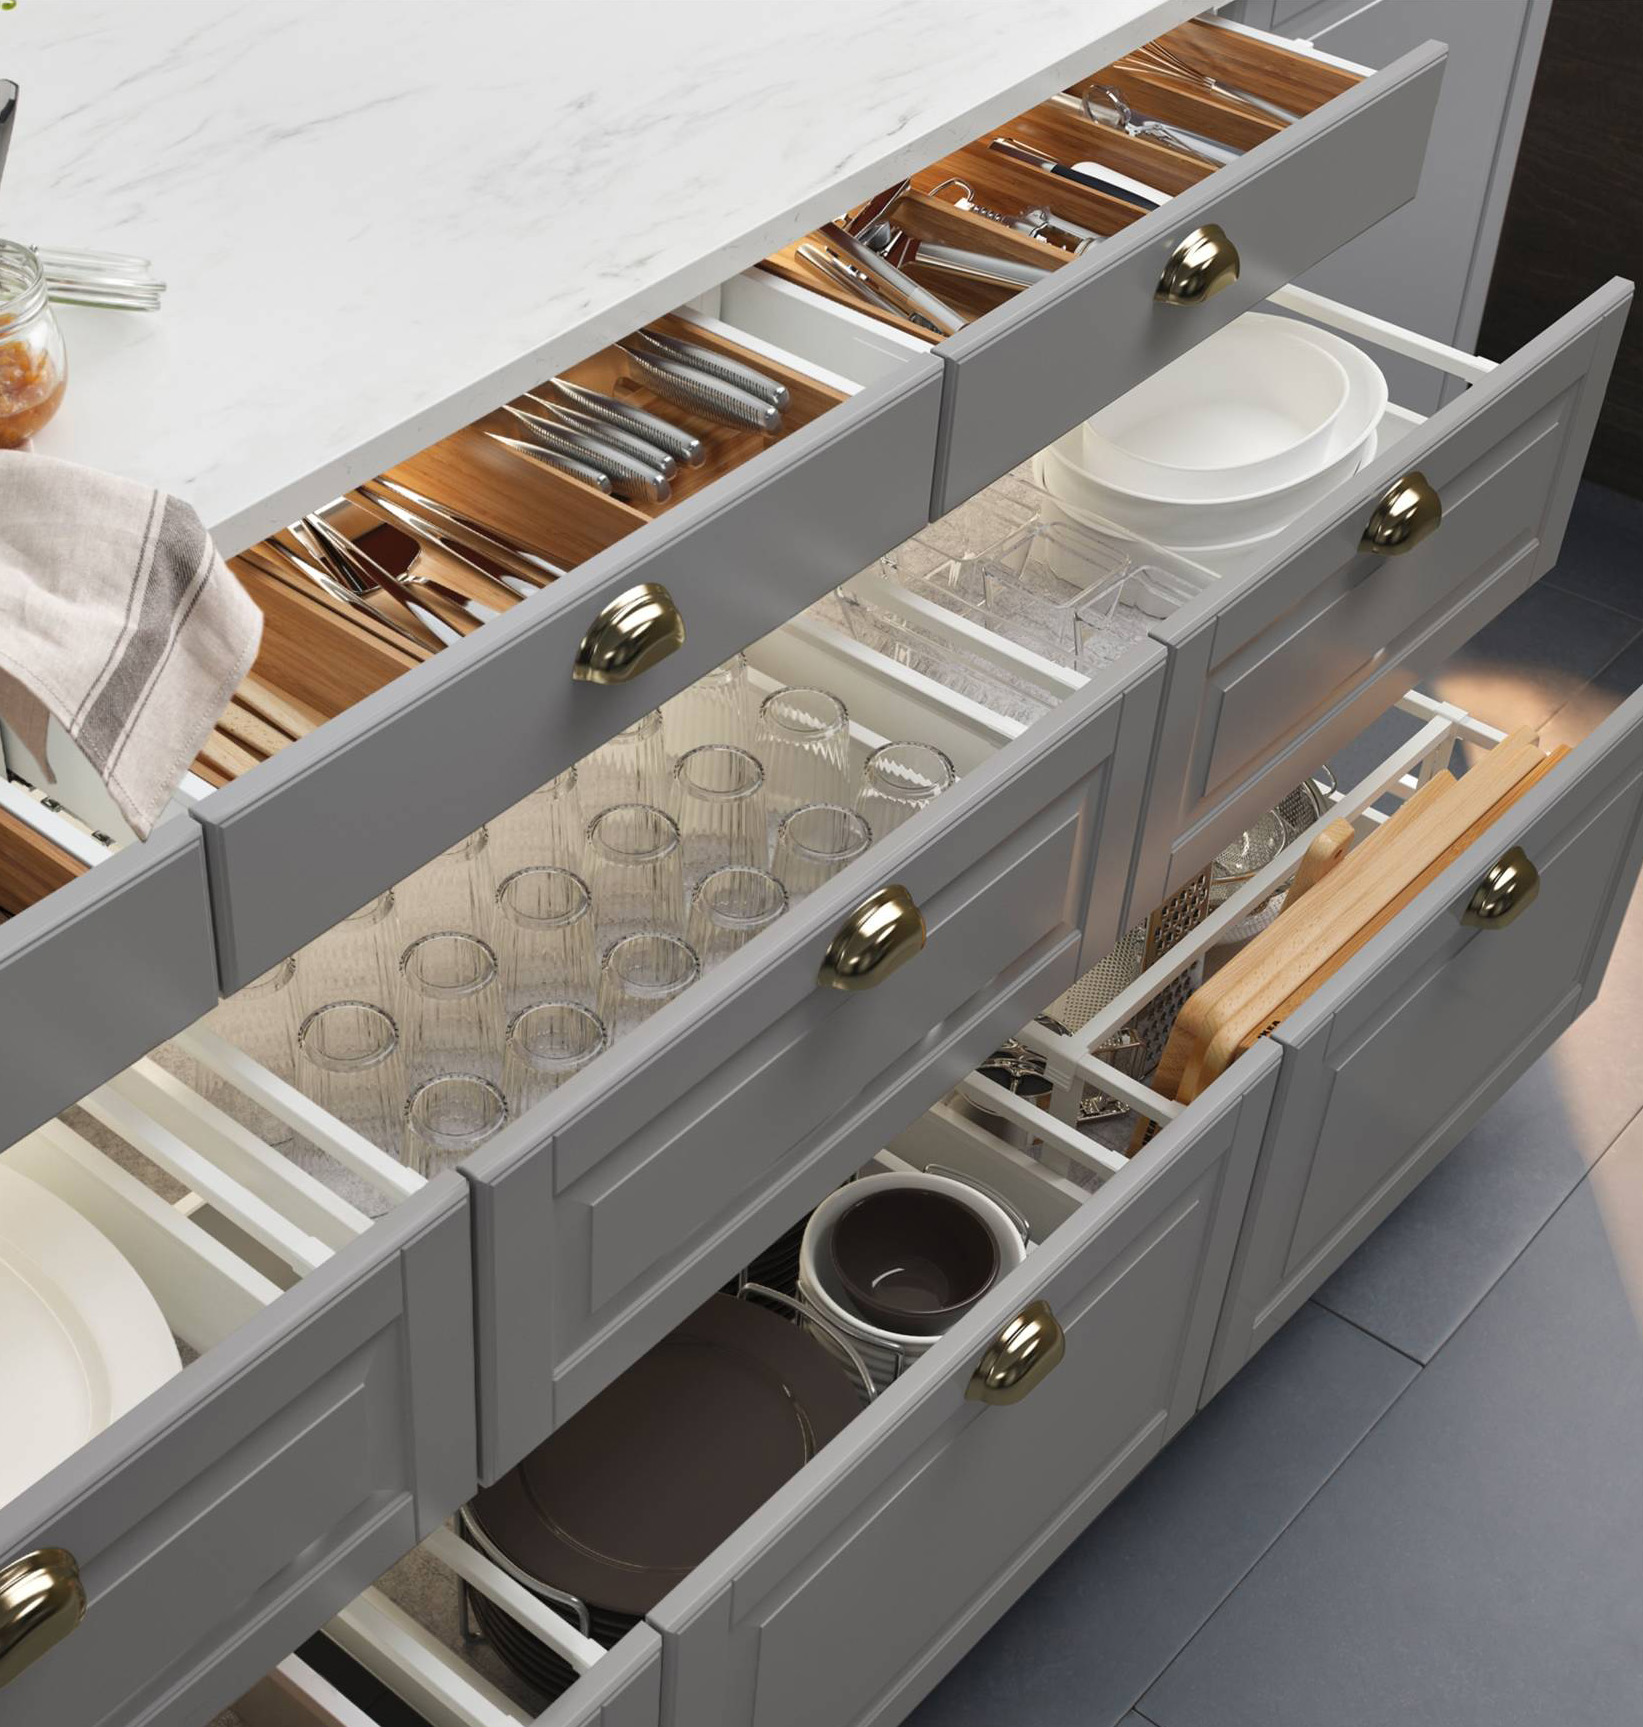 Modern Kitchen Drawers a Breeze for Work and Organization